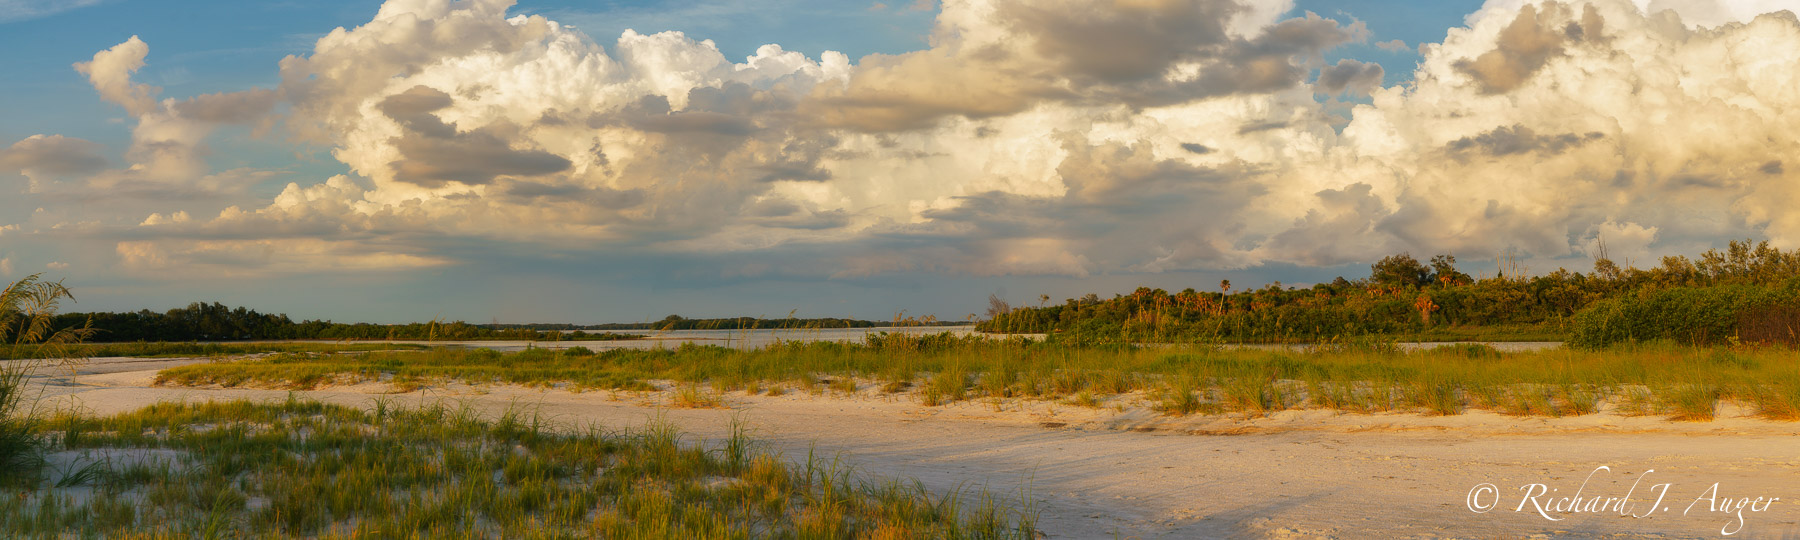 Fort De Soto Park, Florida, Pinellas County, St Petersburg, Tampa, Sand Dunes, Sunset, Clouds, Photograph, Photographer, Photo, Landscape, Richard Auger